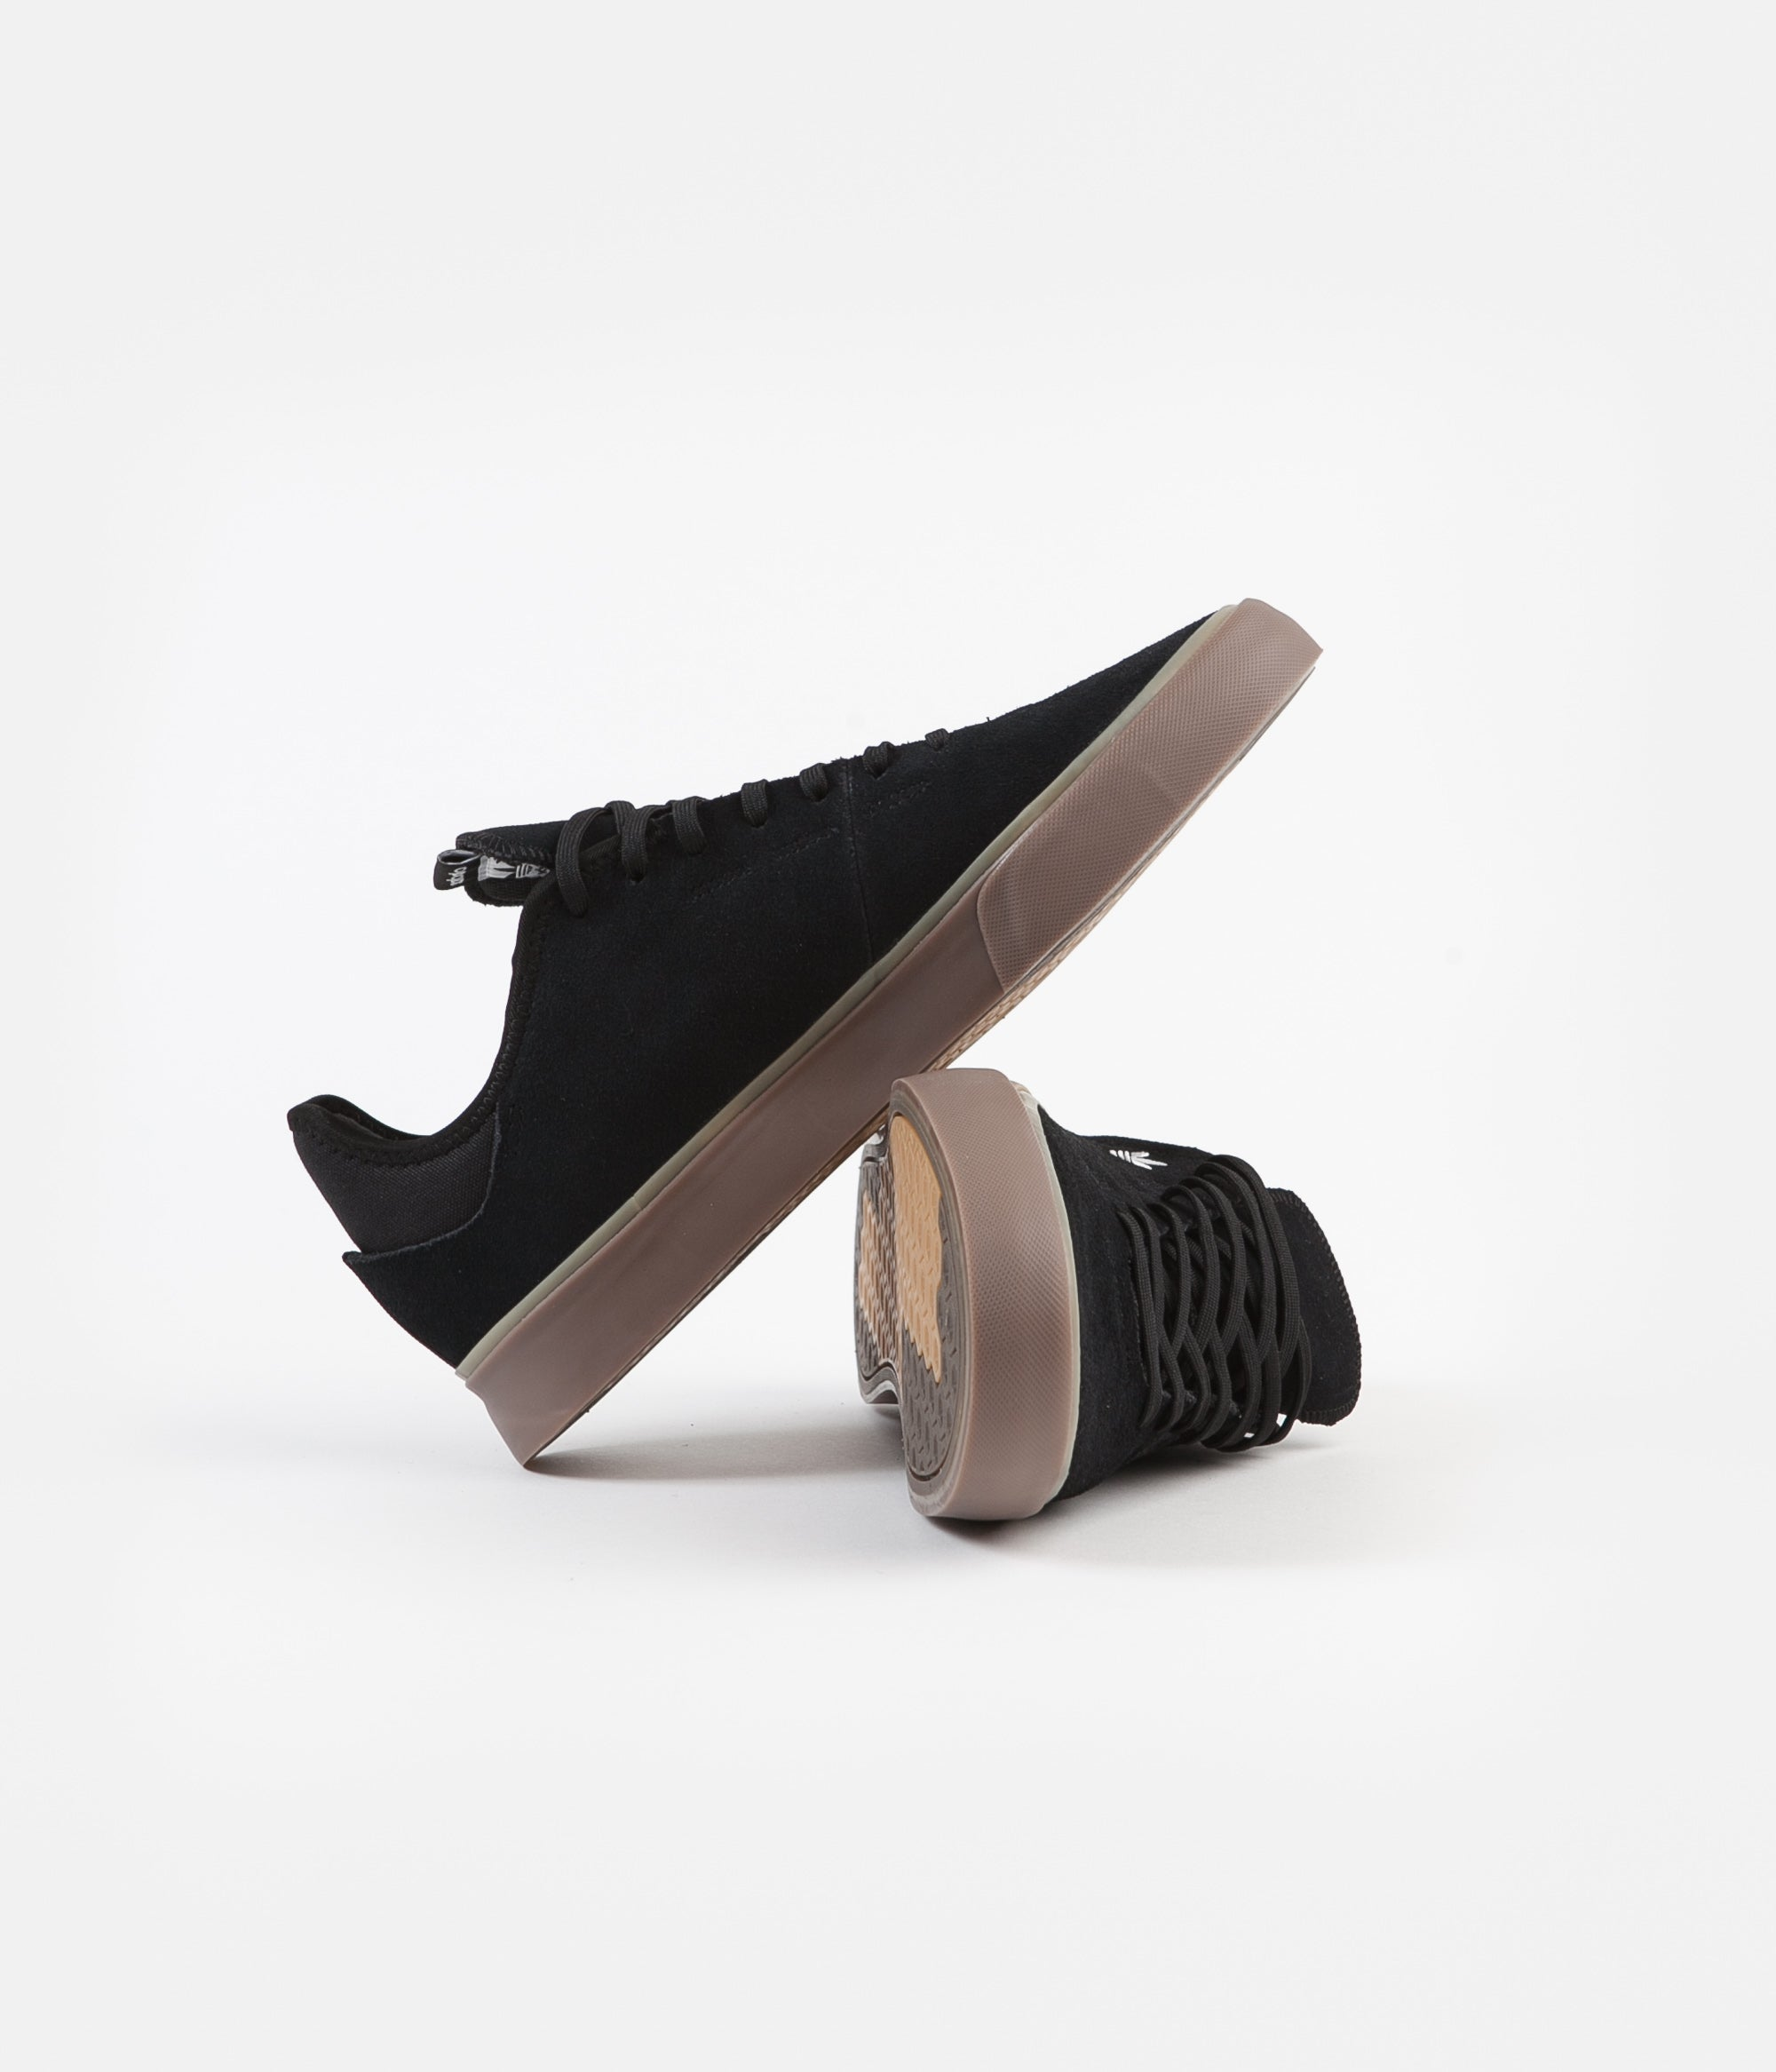 Adidas Sabalo Shoes - Core Black / White / Gum5